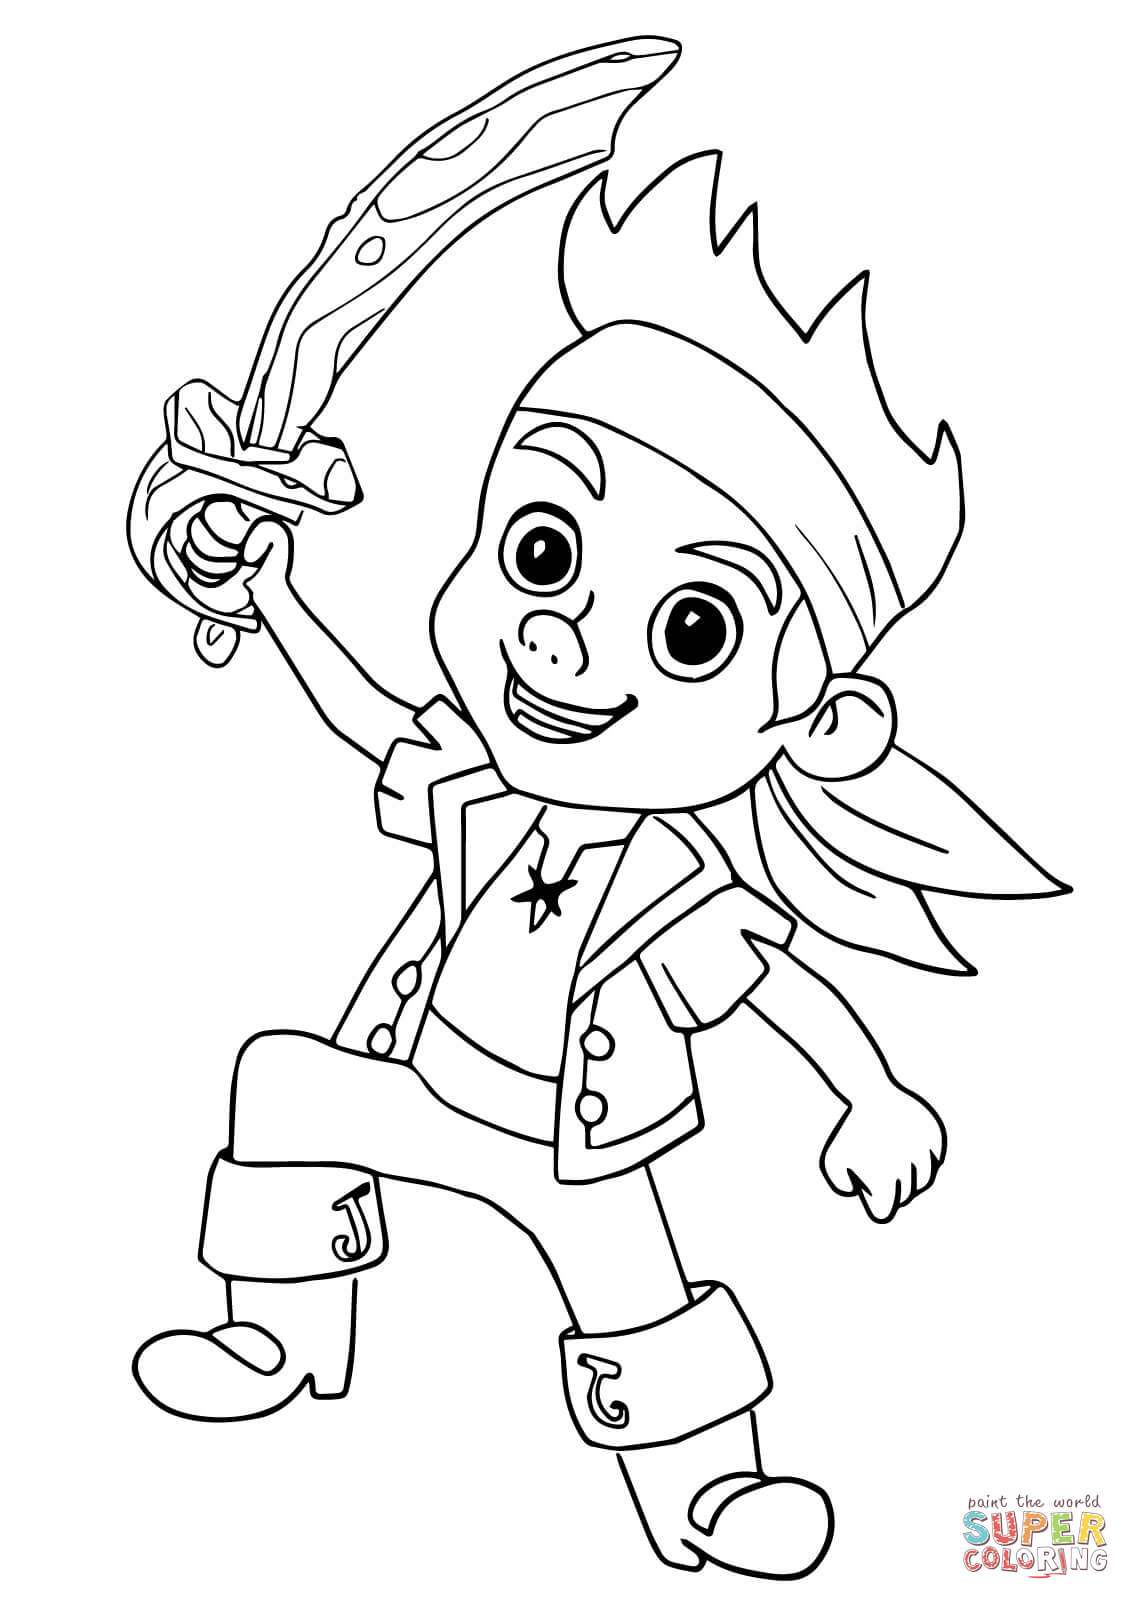 jake the pirate jake the pirate coloring pages coloring pages to jake the pirate